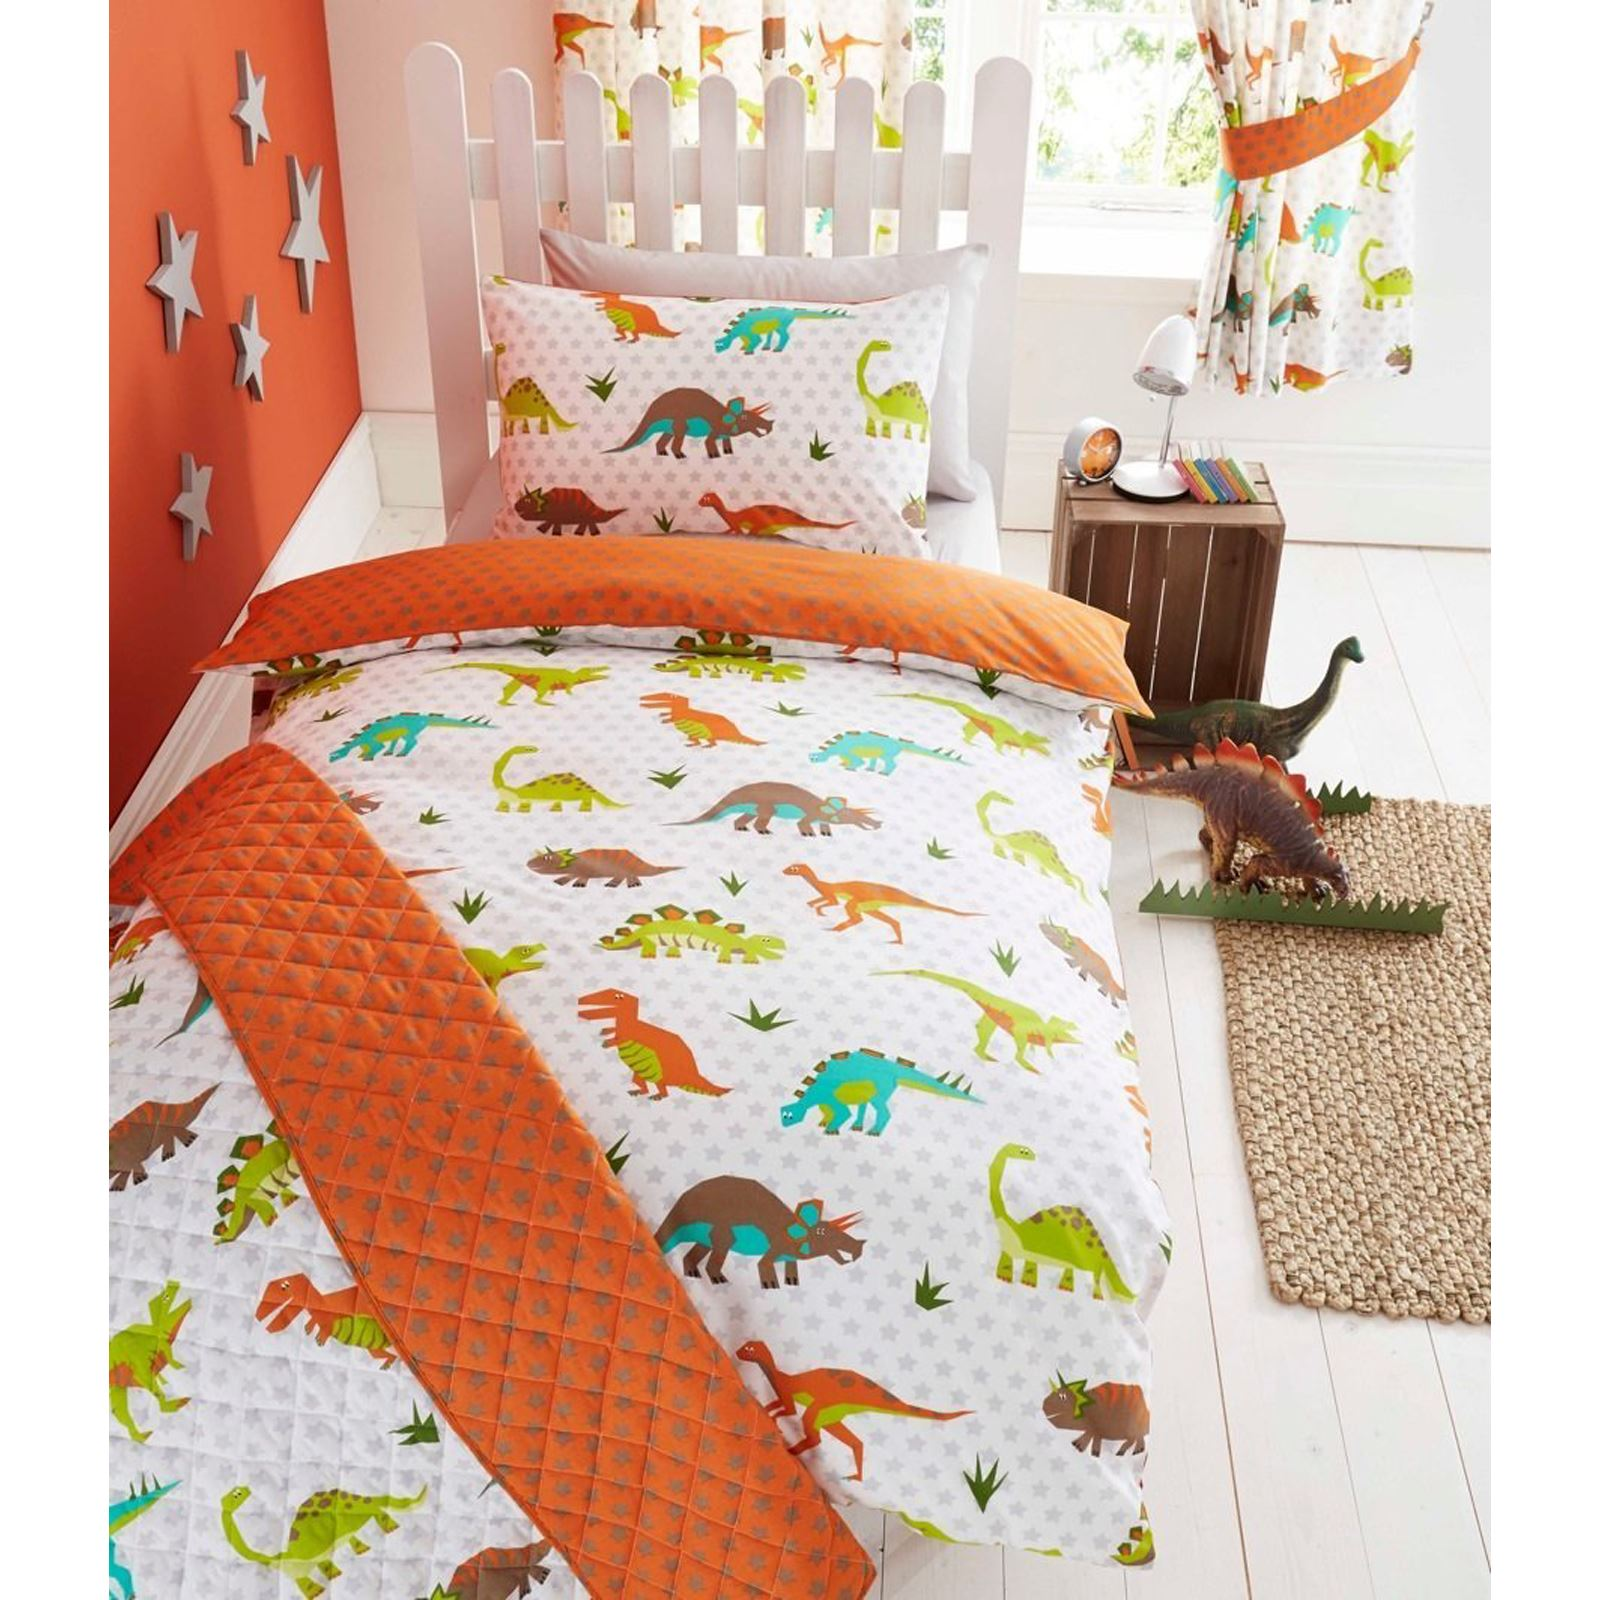 dinosaurier design einzel doppel bettbezug sets jungen bettw sche schlafzimmer ebay. Black Bedroom Furniture Sets. Home Design Ideas